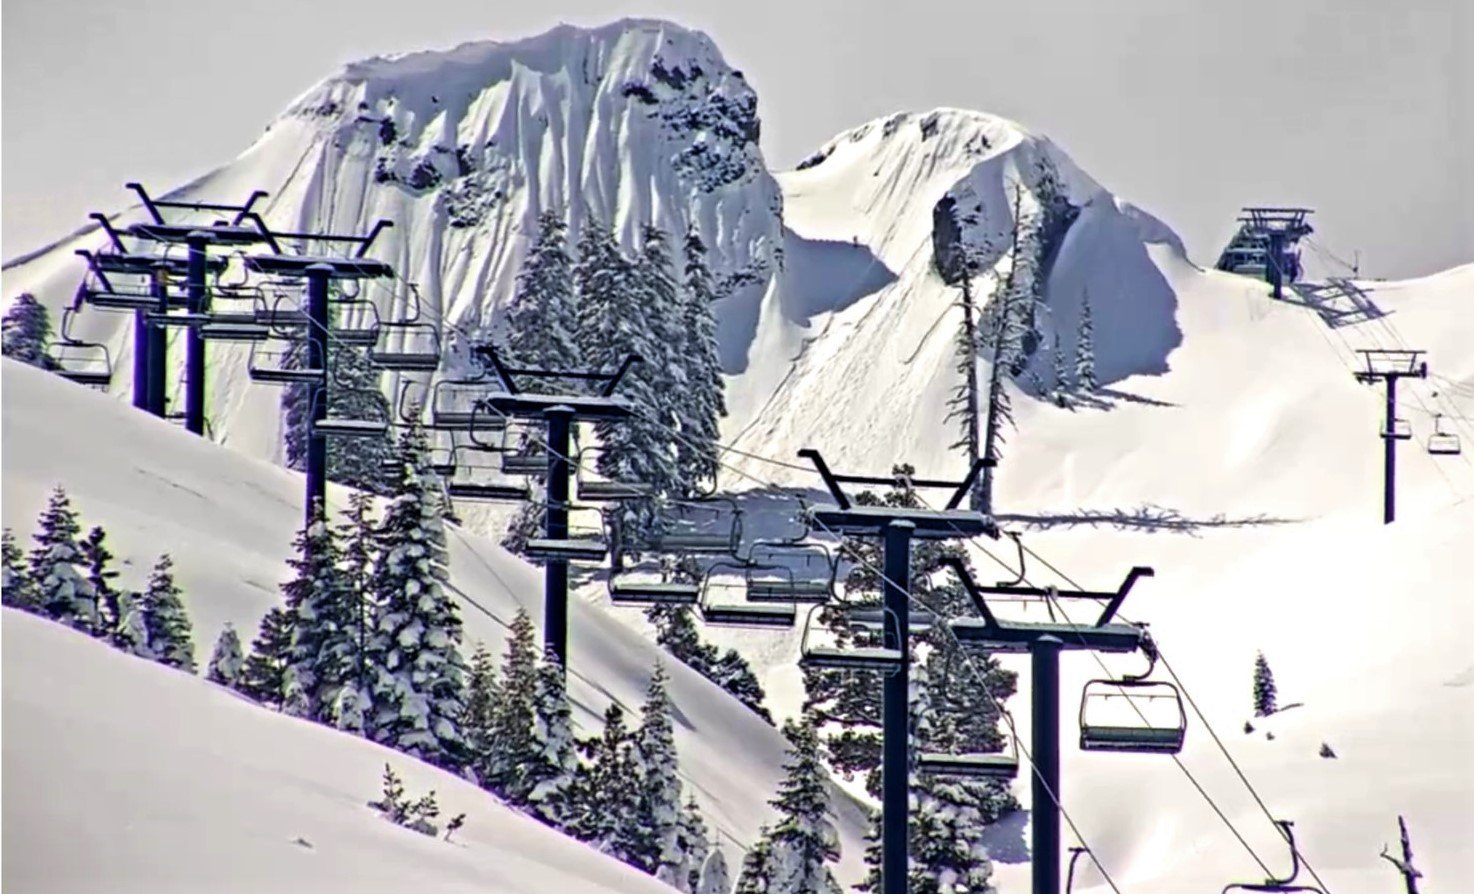 KT-22, Squaw Valley, April 2020